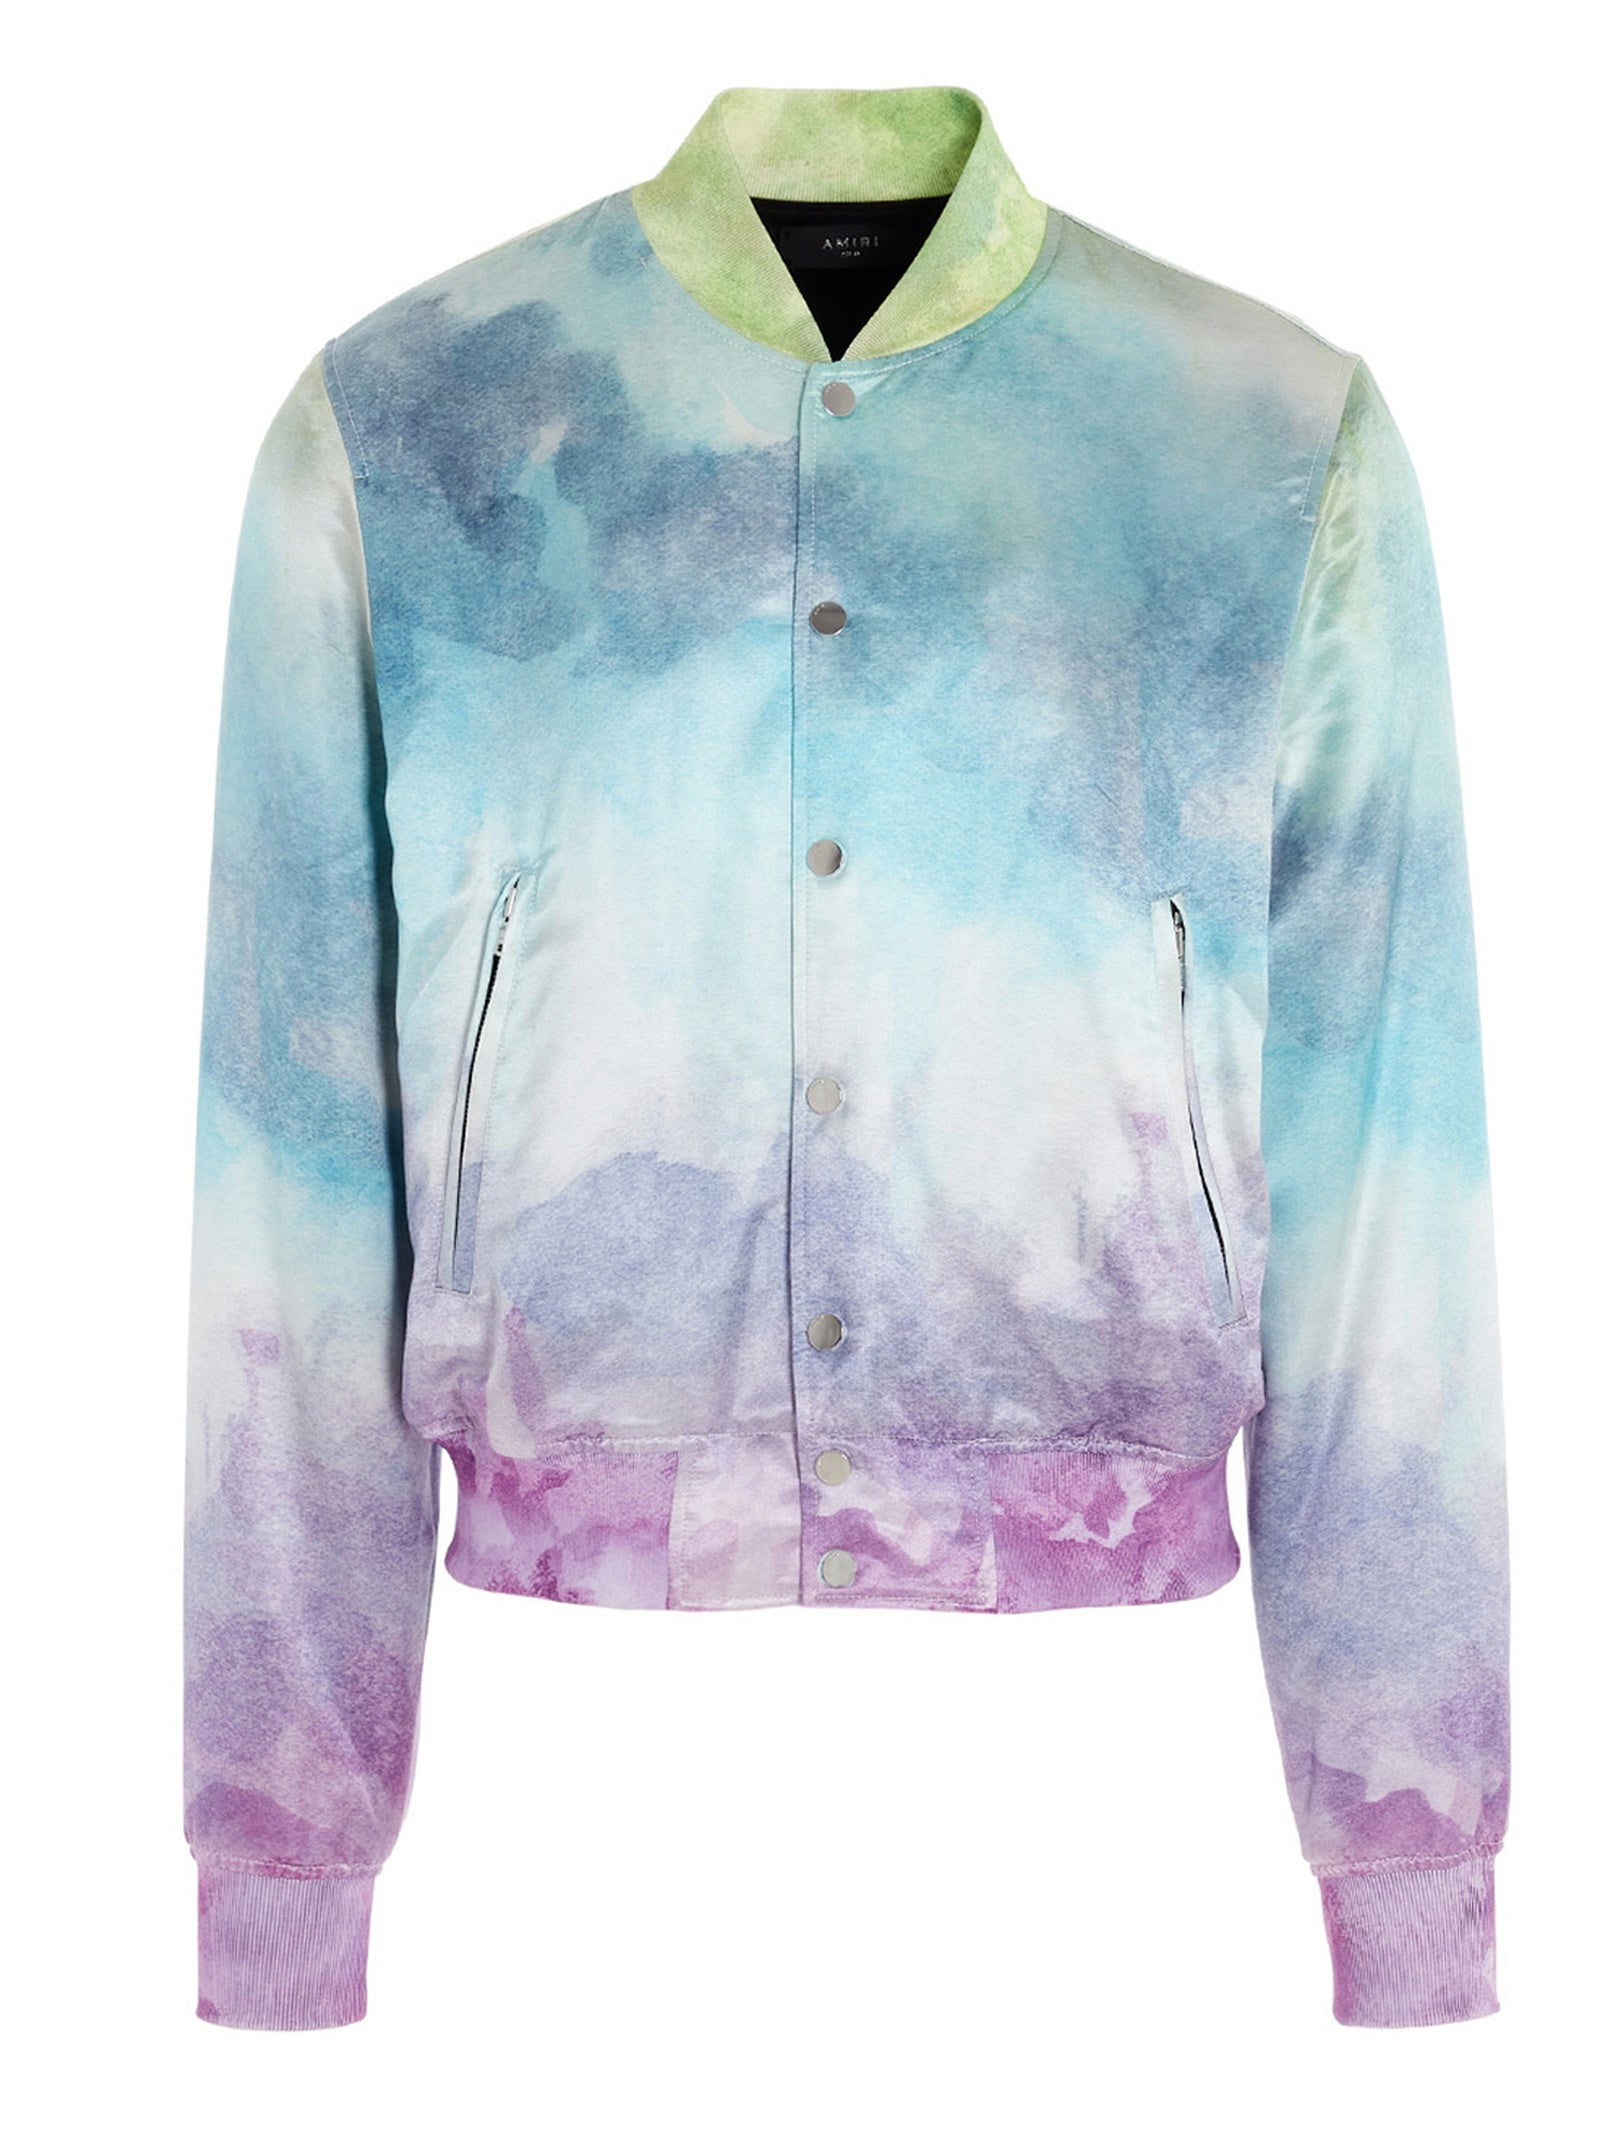 AMIRI AMIRI WATERCOLOUR BOMBER JACKET